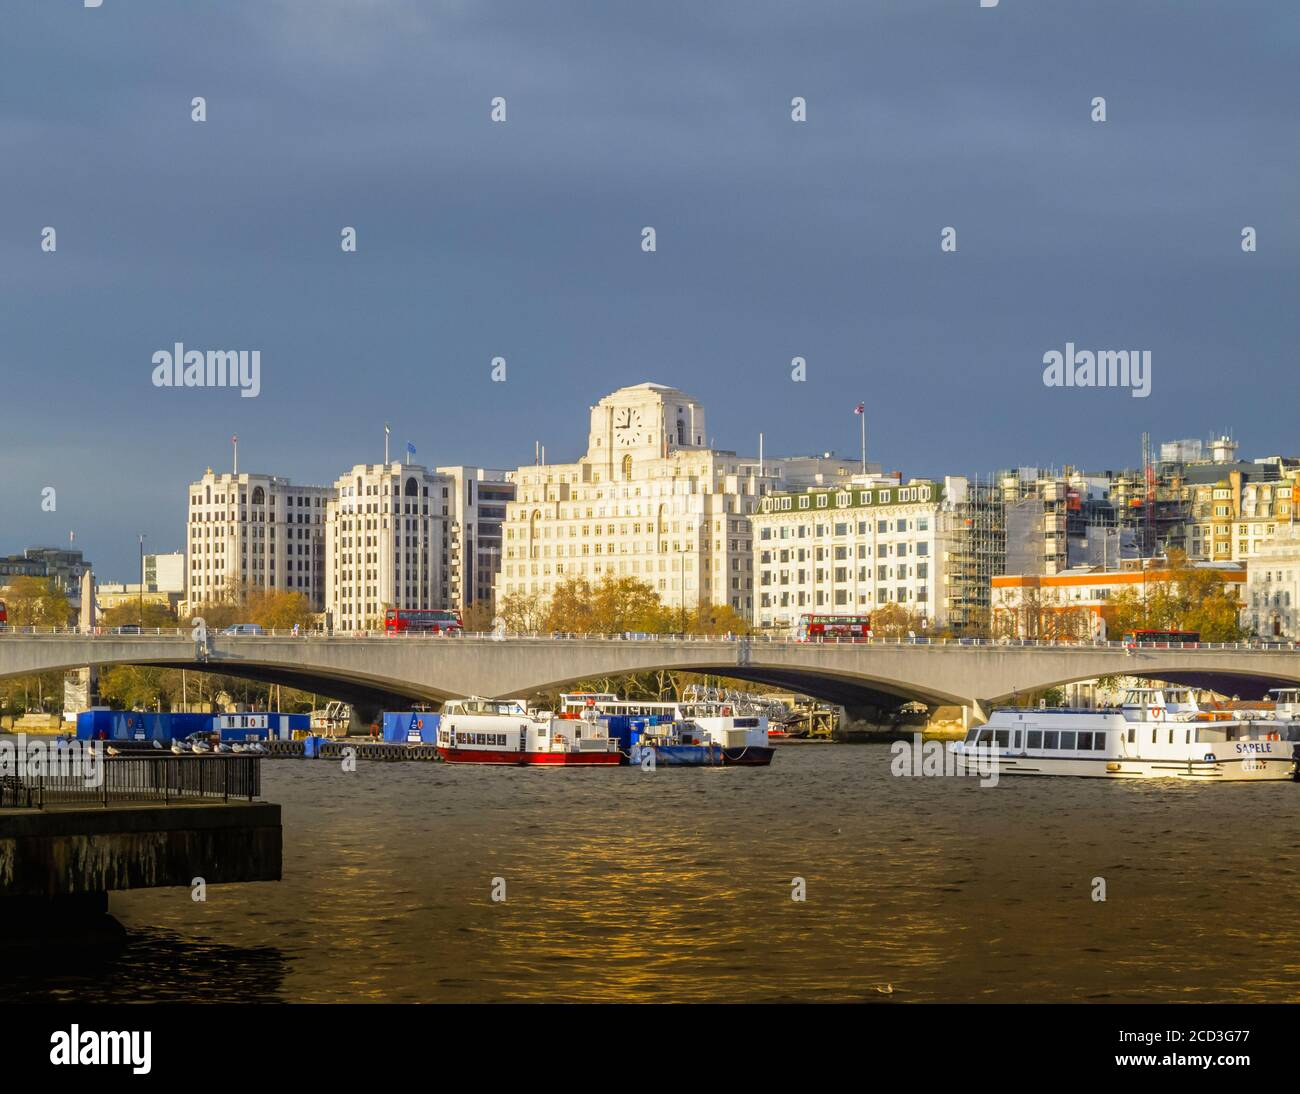 View across the River Thames over Waterloo Bridge to Shell Mex House in morning light in winter under grey skies Stock Photo